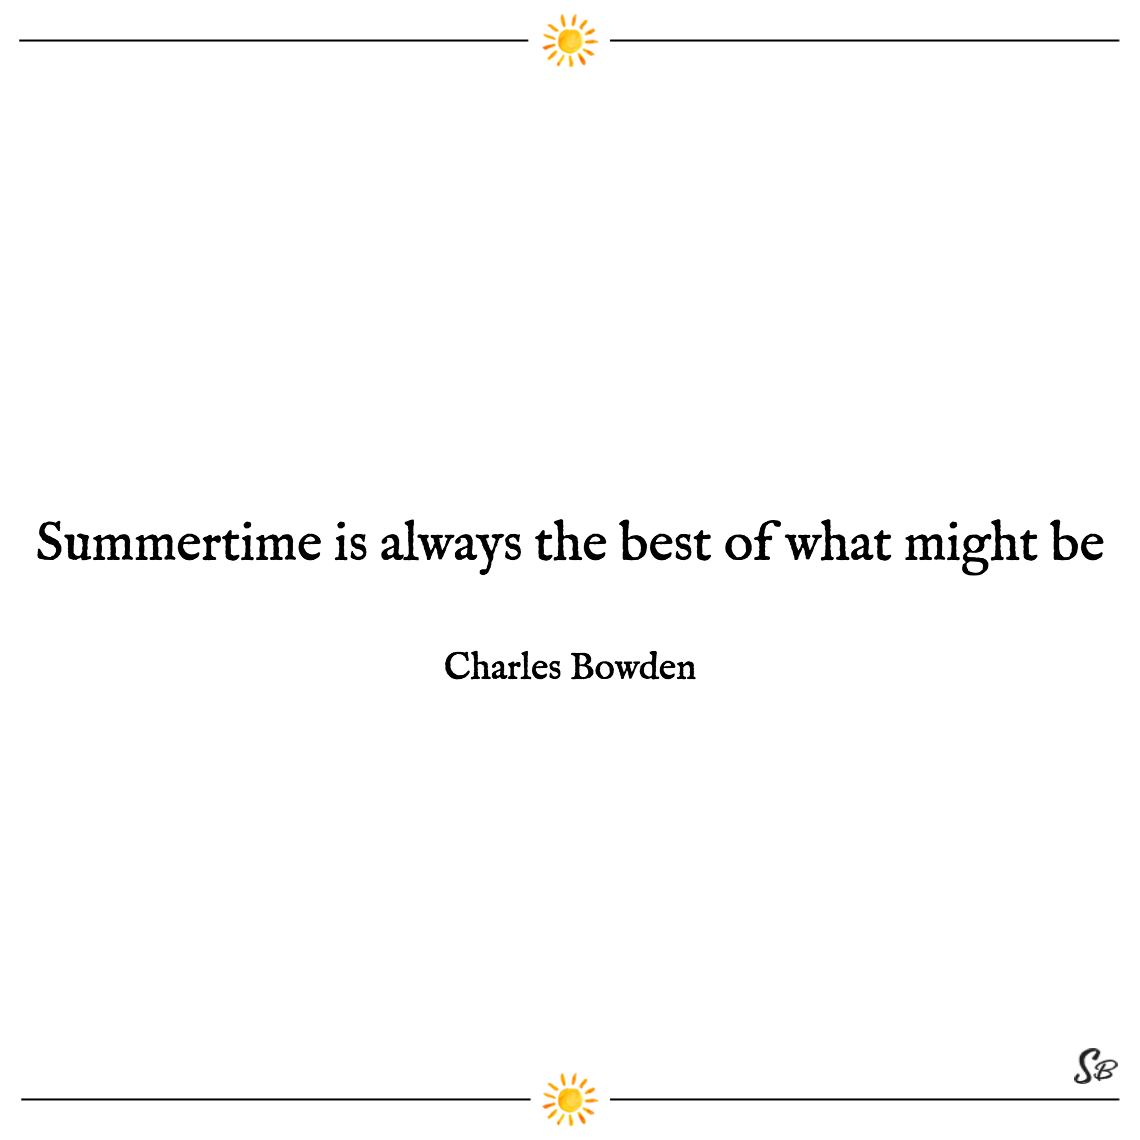 Summertime is always the best of what might be charles bowden